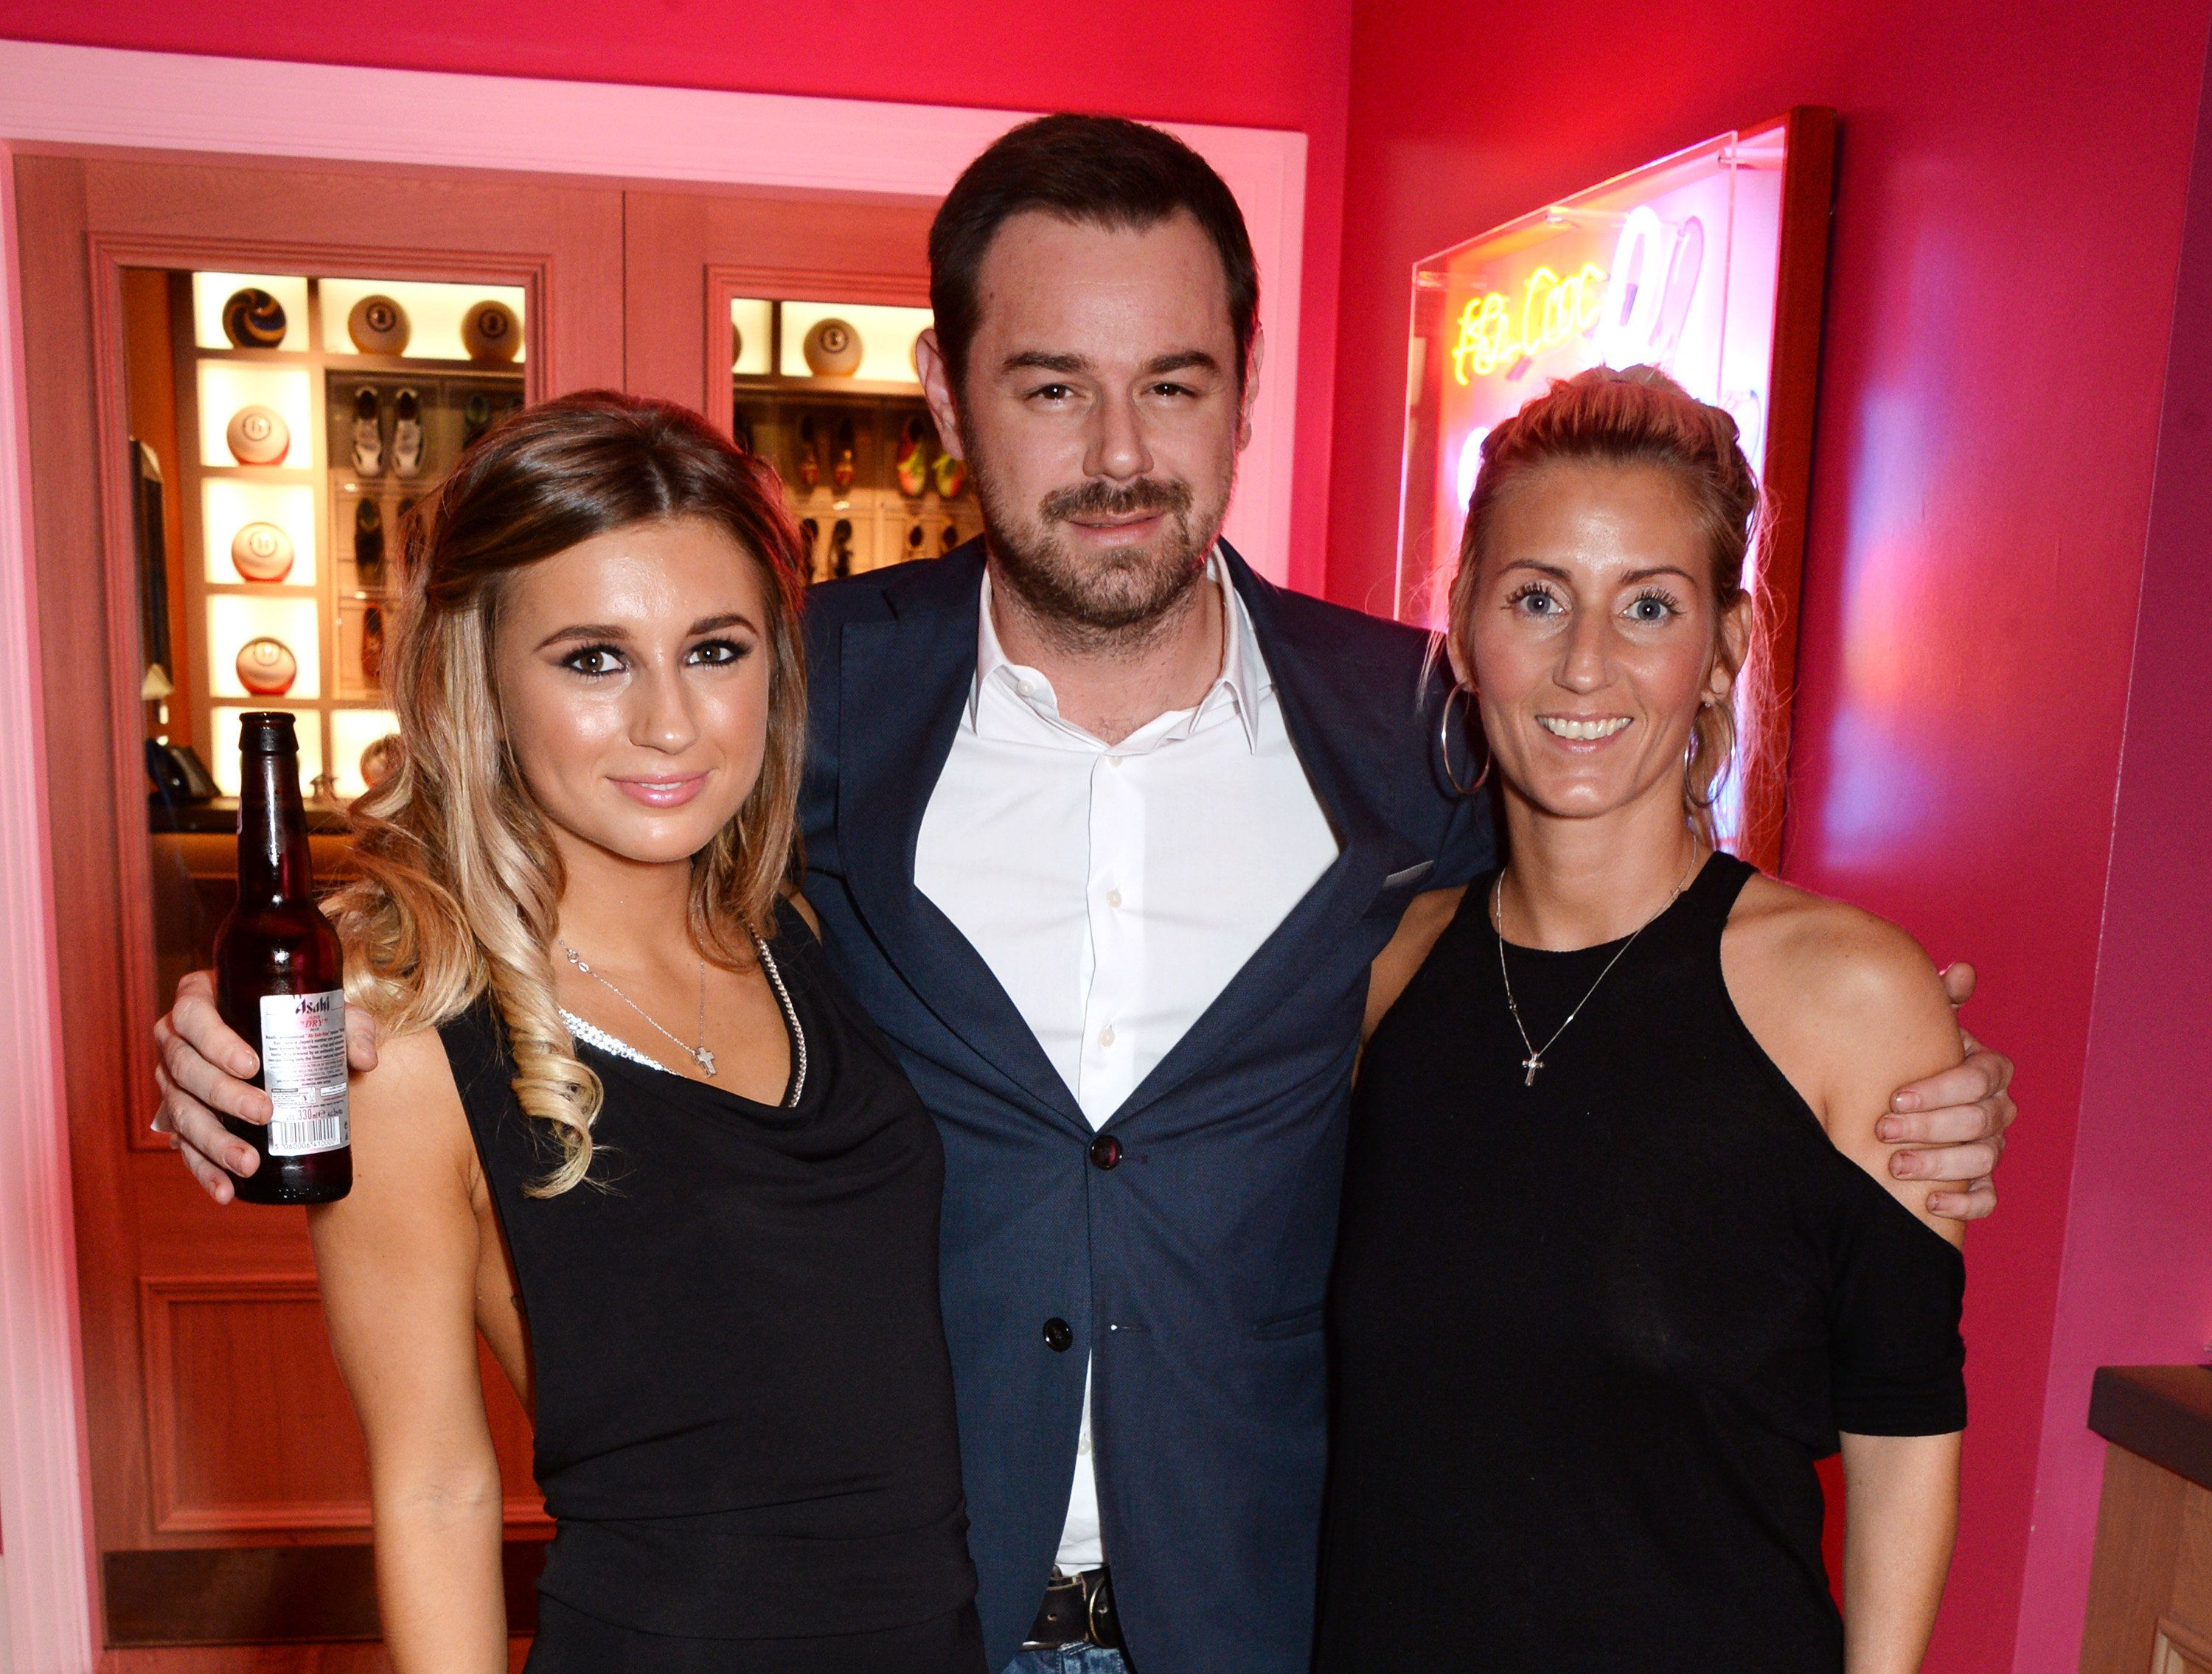 Danny Dyer Finally Breaks His Silence On Daughter's 'Love Island'